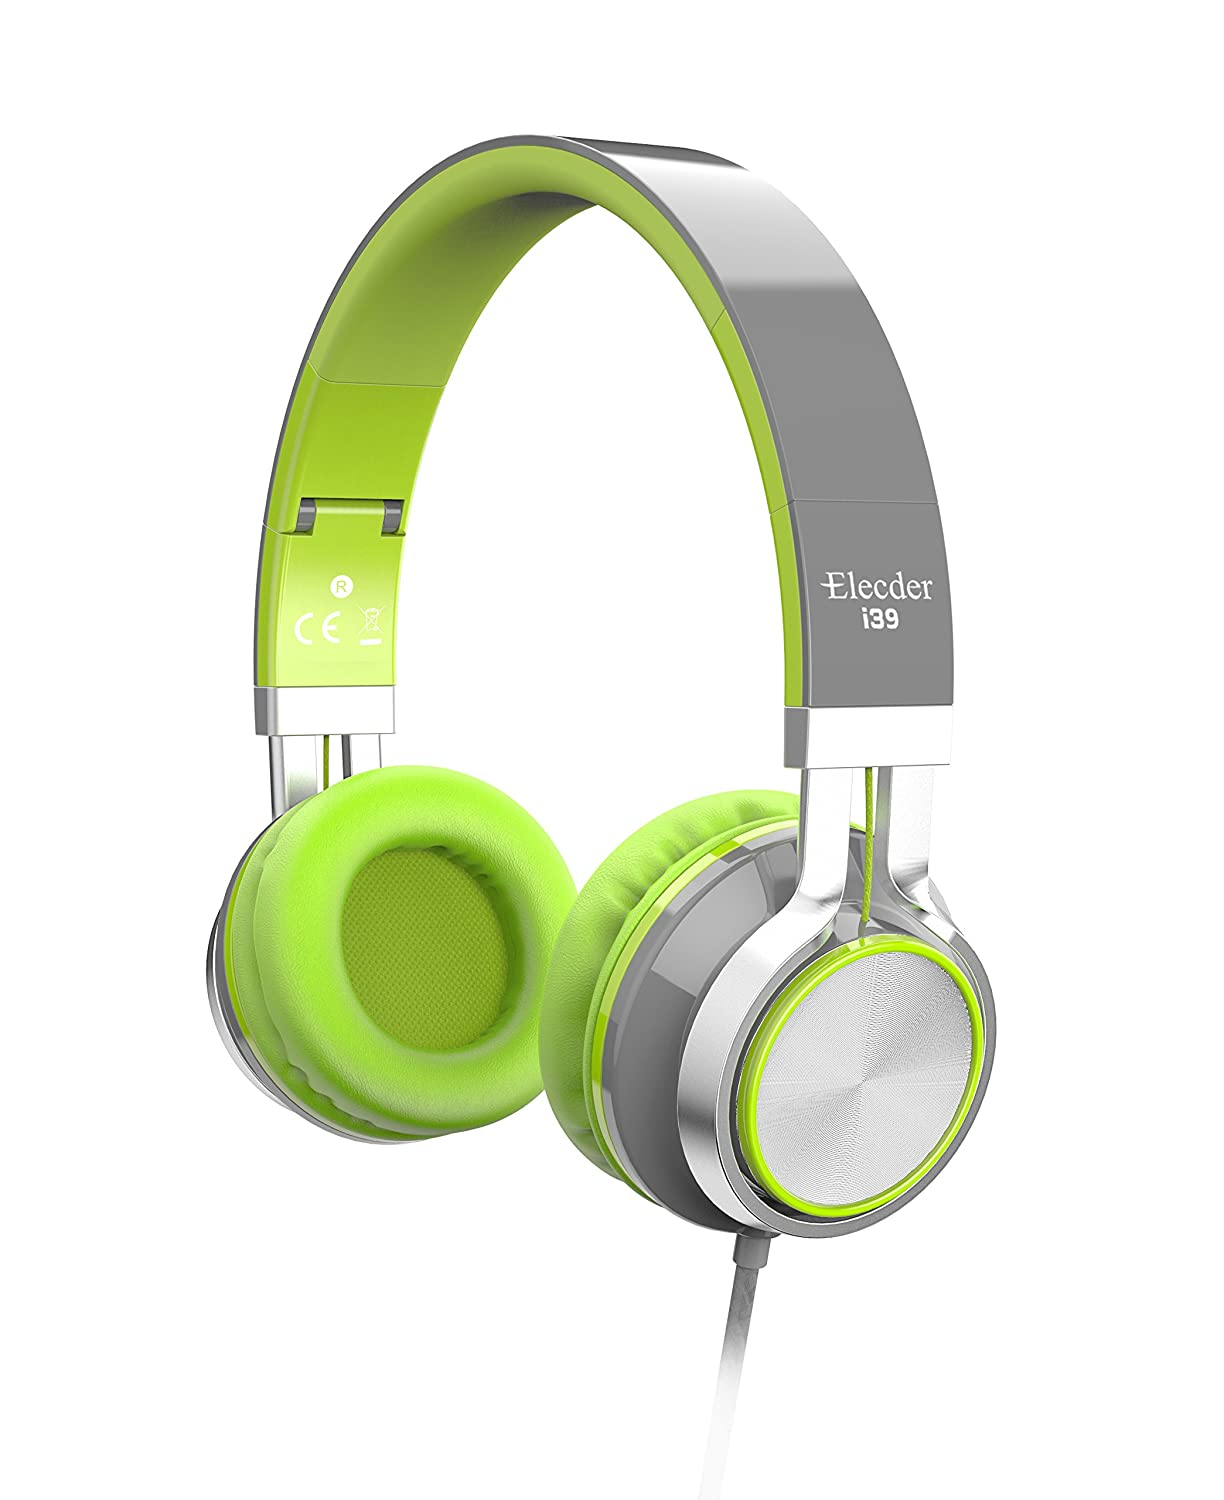 Elecder i39 Headphones with Microphone Kids Children Girls Boys Teens Adults Foldable Adjustable Wired On Ear Headsets Compatible iPad Cellphones Computer MP3/4 Green/Gray